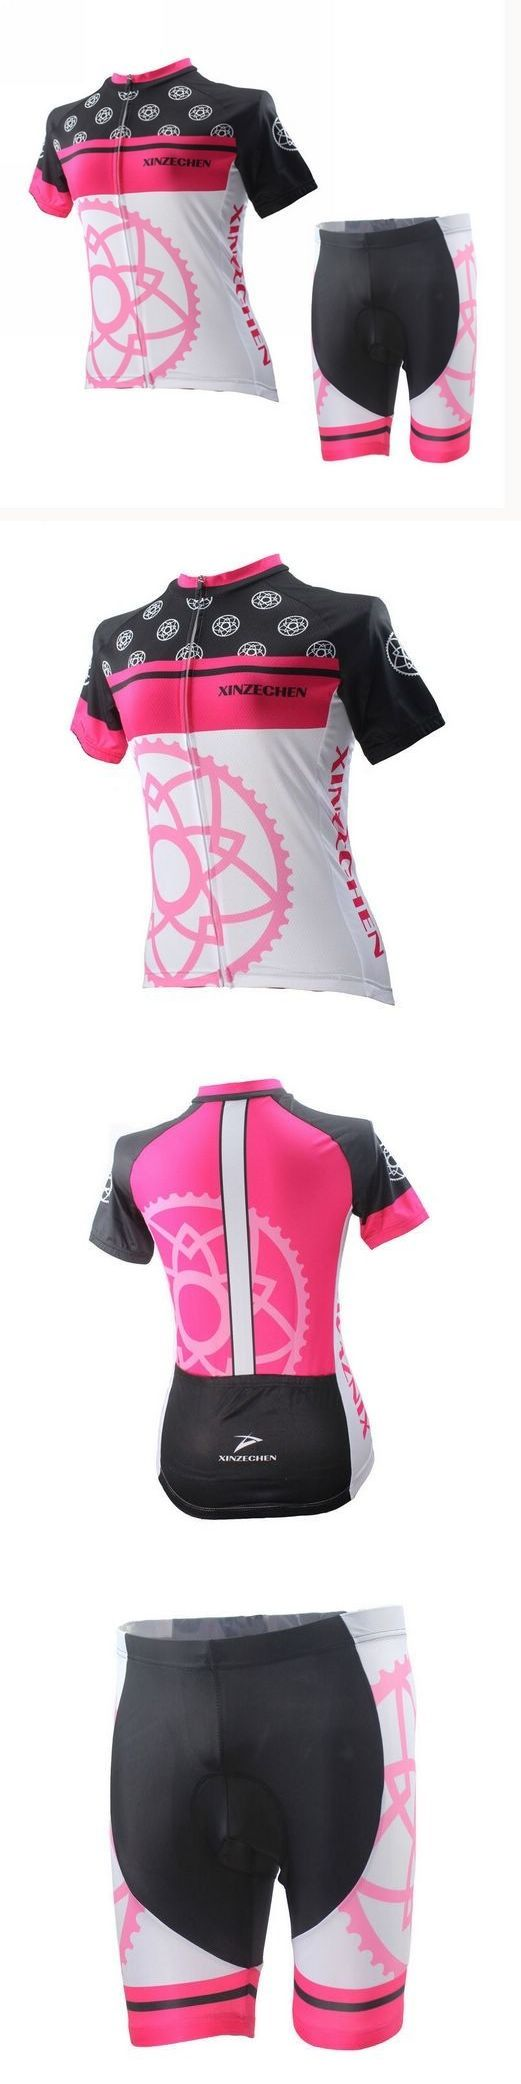 Jersey and Pant Short Sets 177852: Racing Xinzechen Women Cycling Clothing Bike Short Sleeve Bicycle Jersey Shorts BUY IT NOW ONLY: $31.24